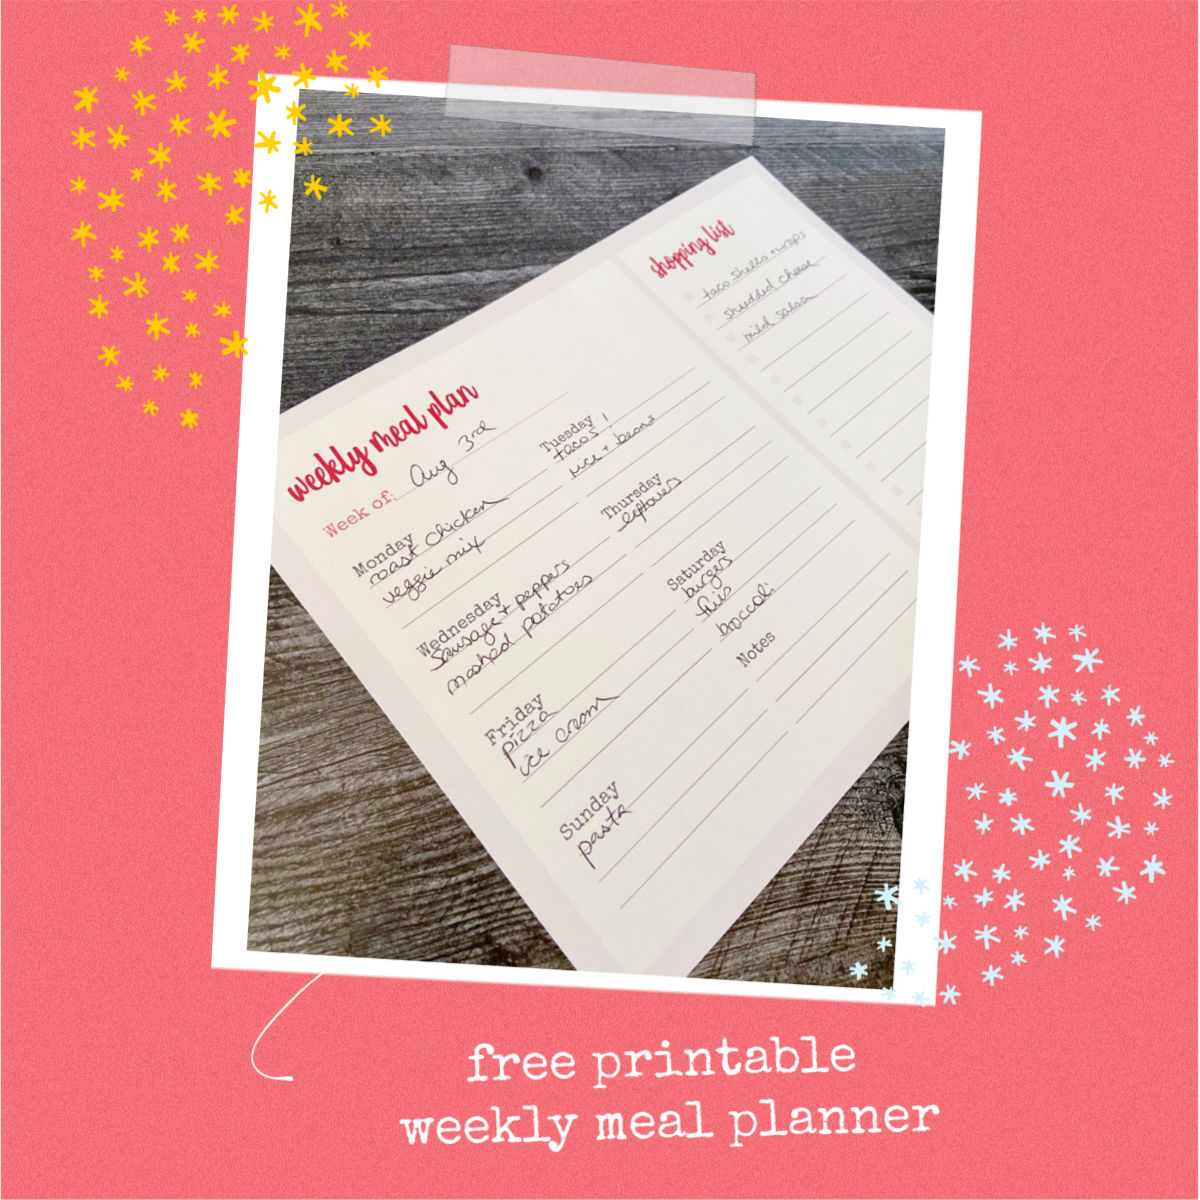 cobberson free printable meal planner shopping list